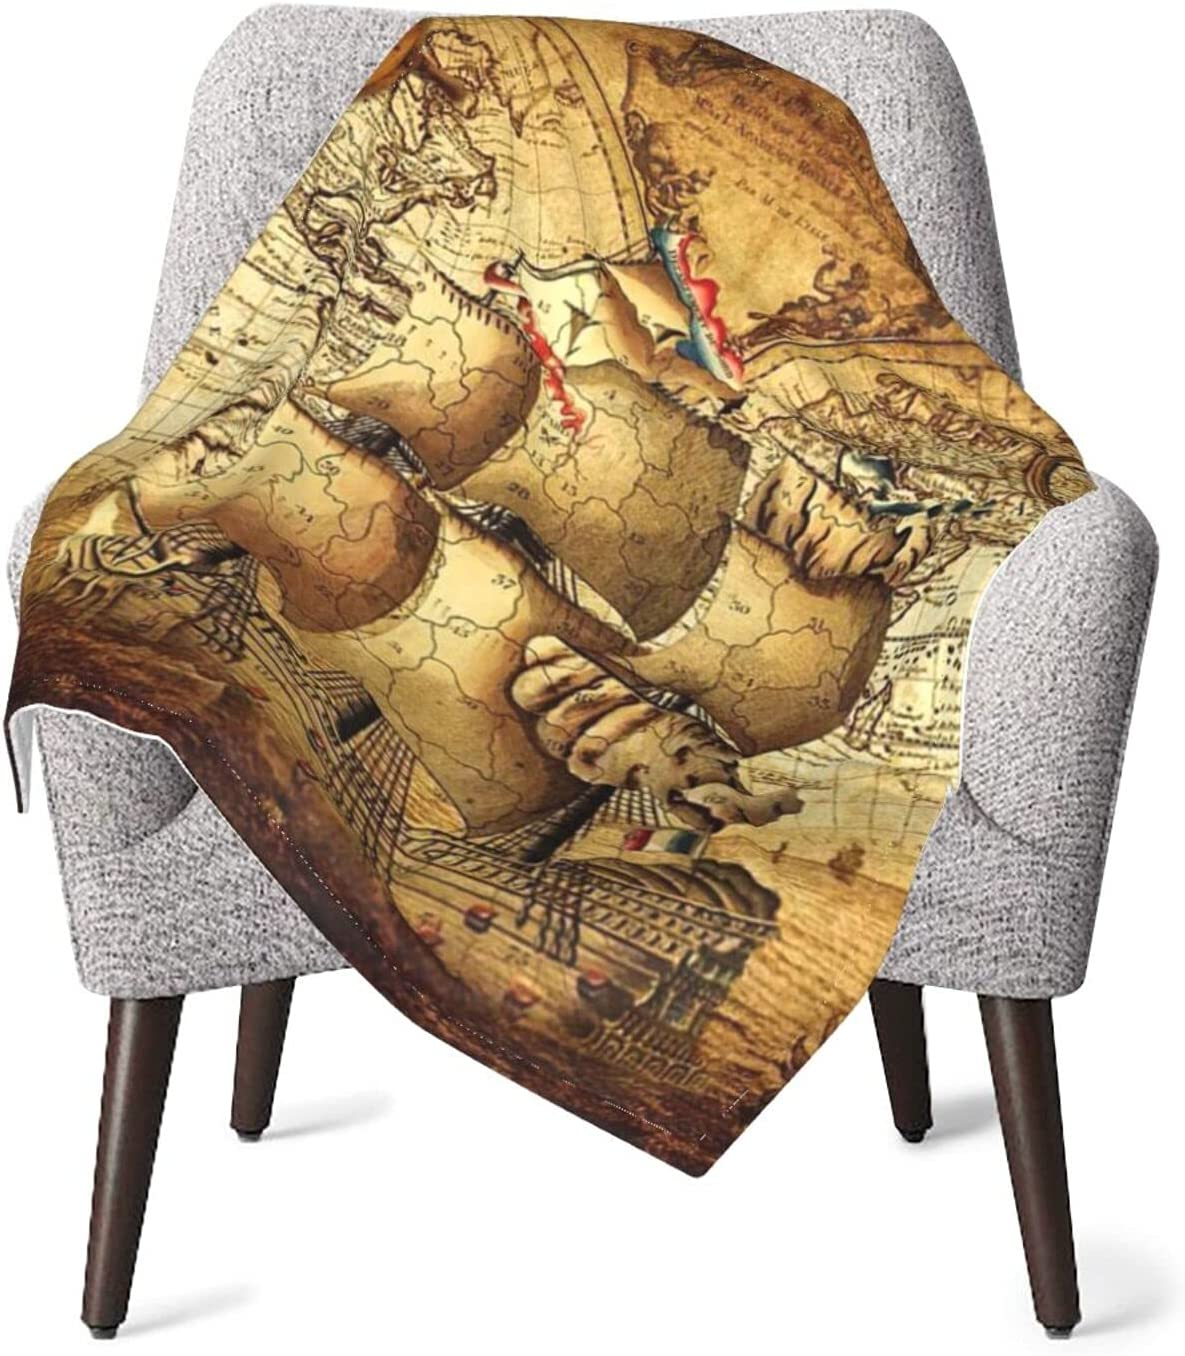 Super-cheap Vintage Pirate Nautical Map Baby Ranking TOP11 Comfy Soft Blanket Bre Newborn